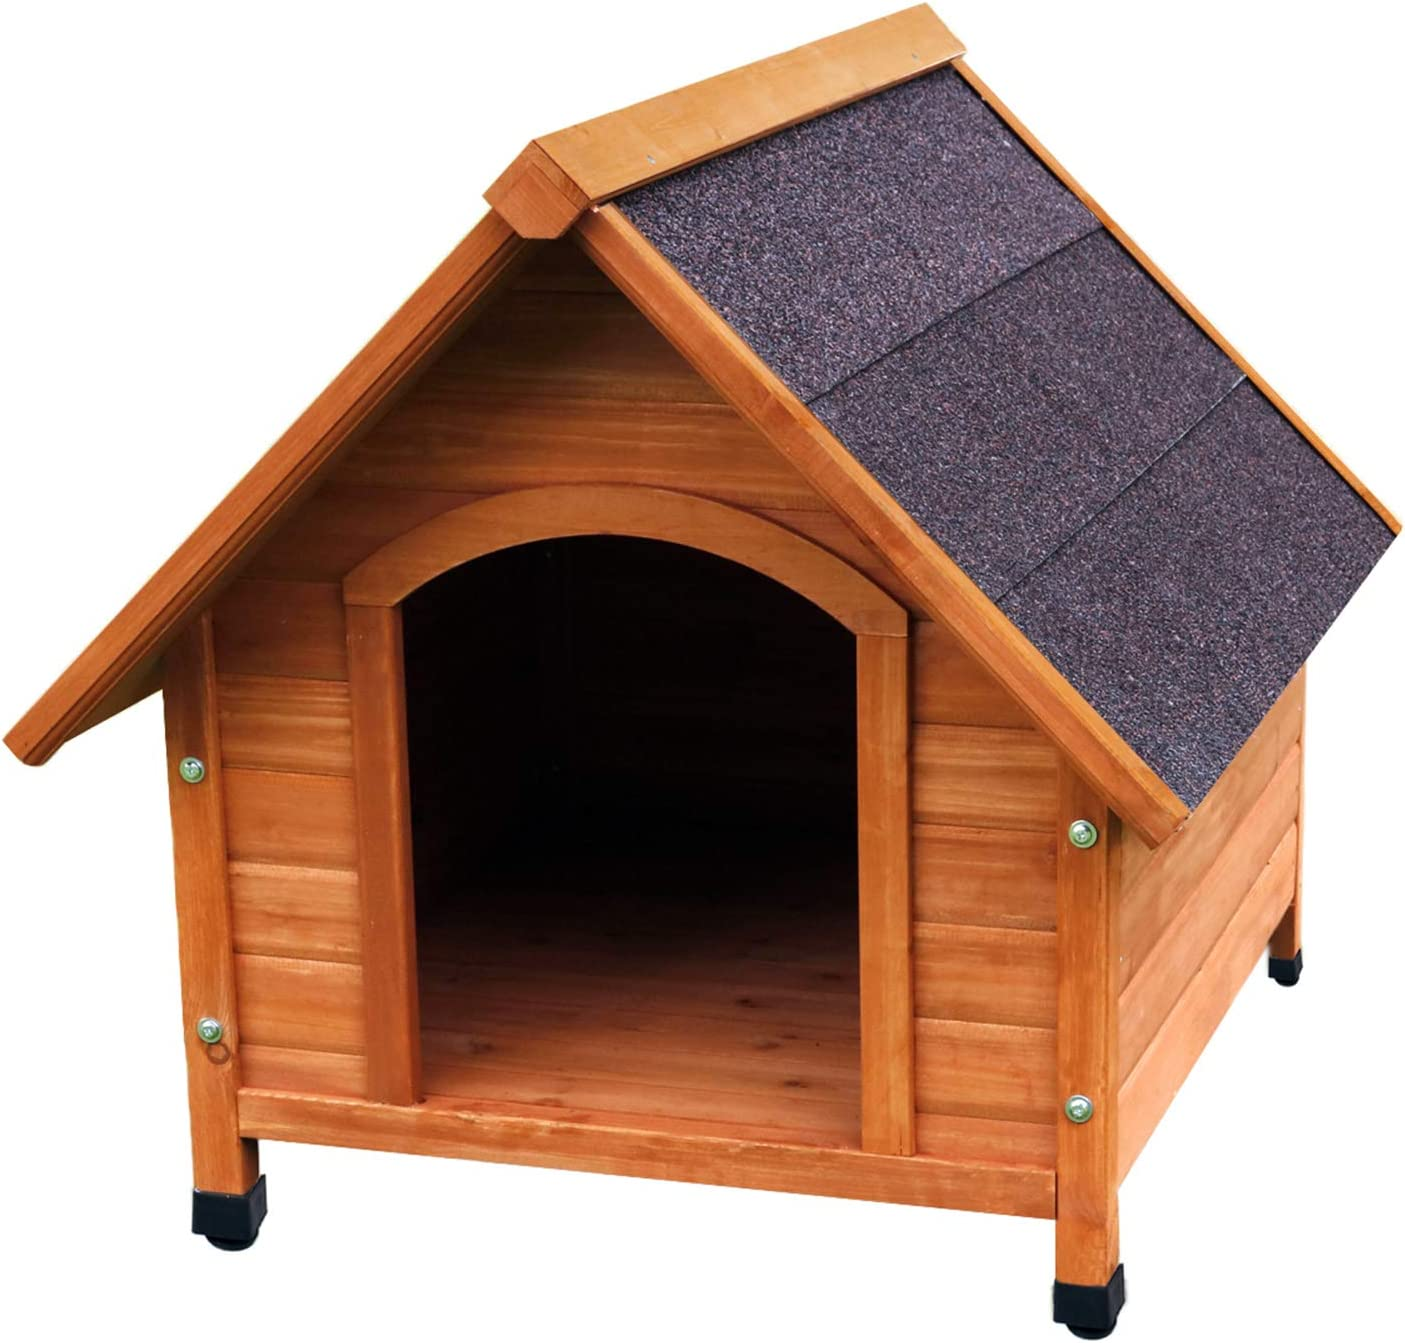 HiCaptain A-Frame Wooden Dog House Deluxe Natural Solid Cedar Pet Kennel